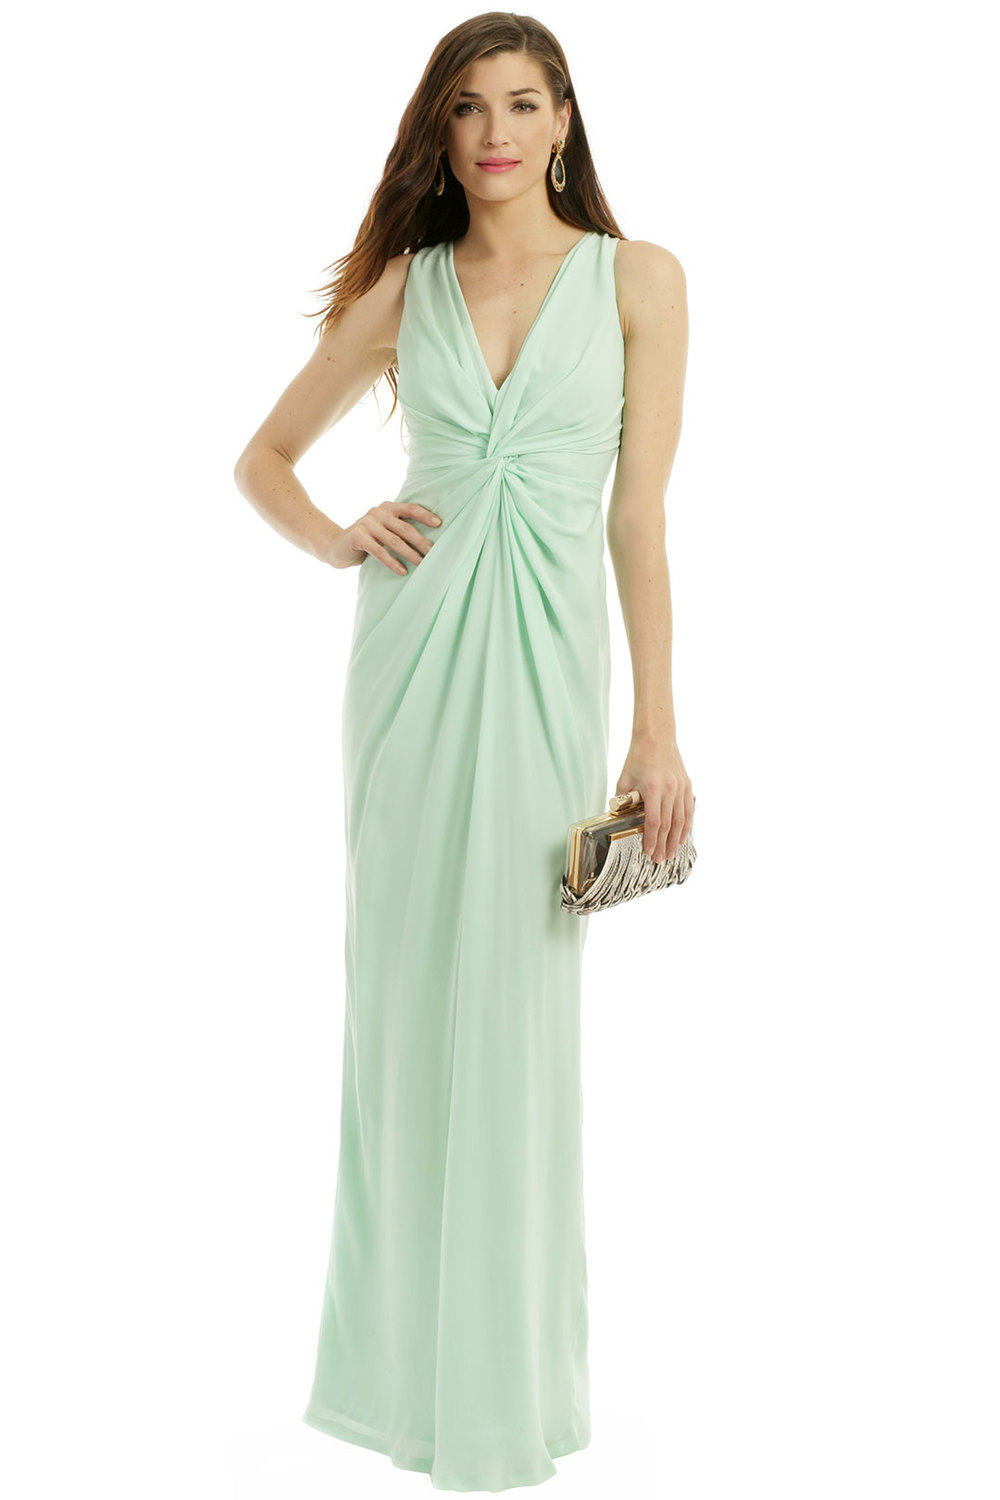 Minty Fresh Gown by Raoul. Rent the Runway. $150 rental.